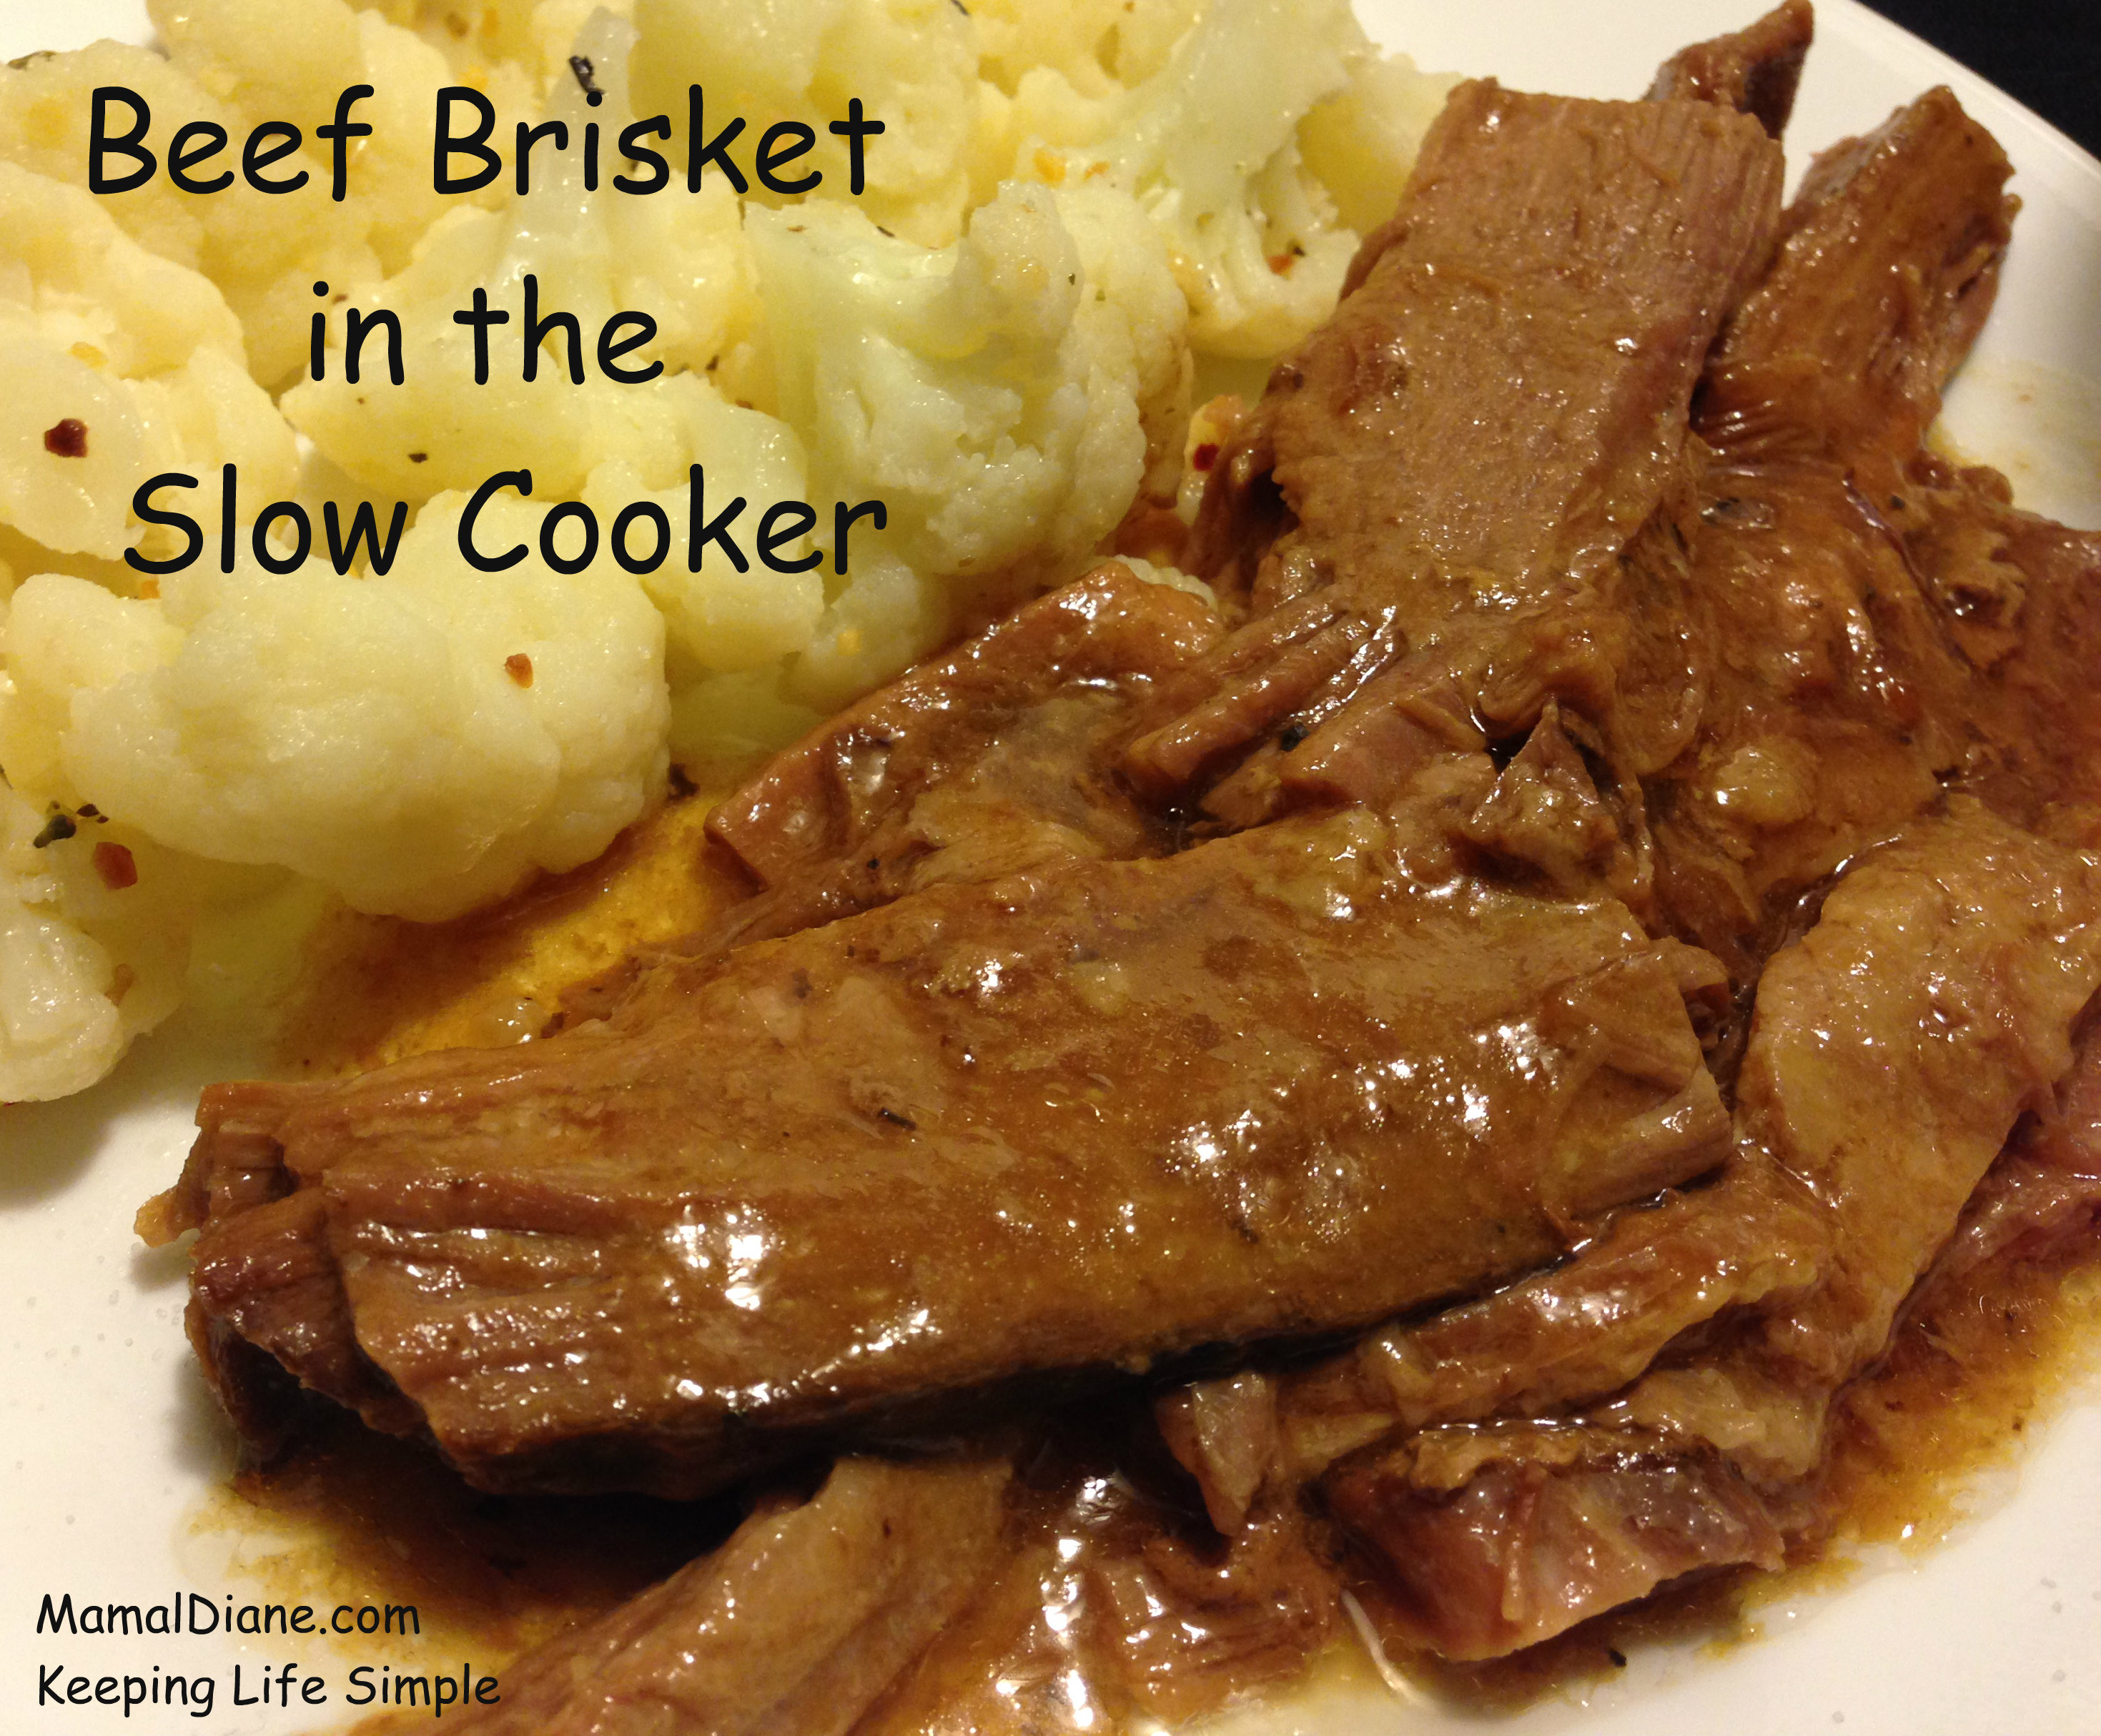 Beef Brisket in the Slow Cooker 5